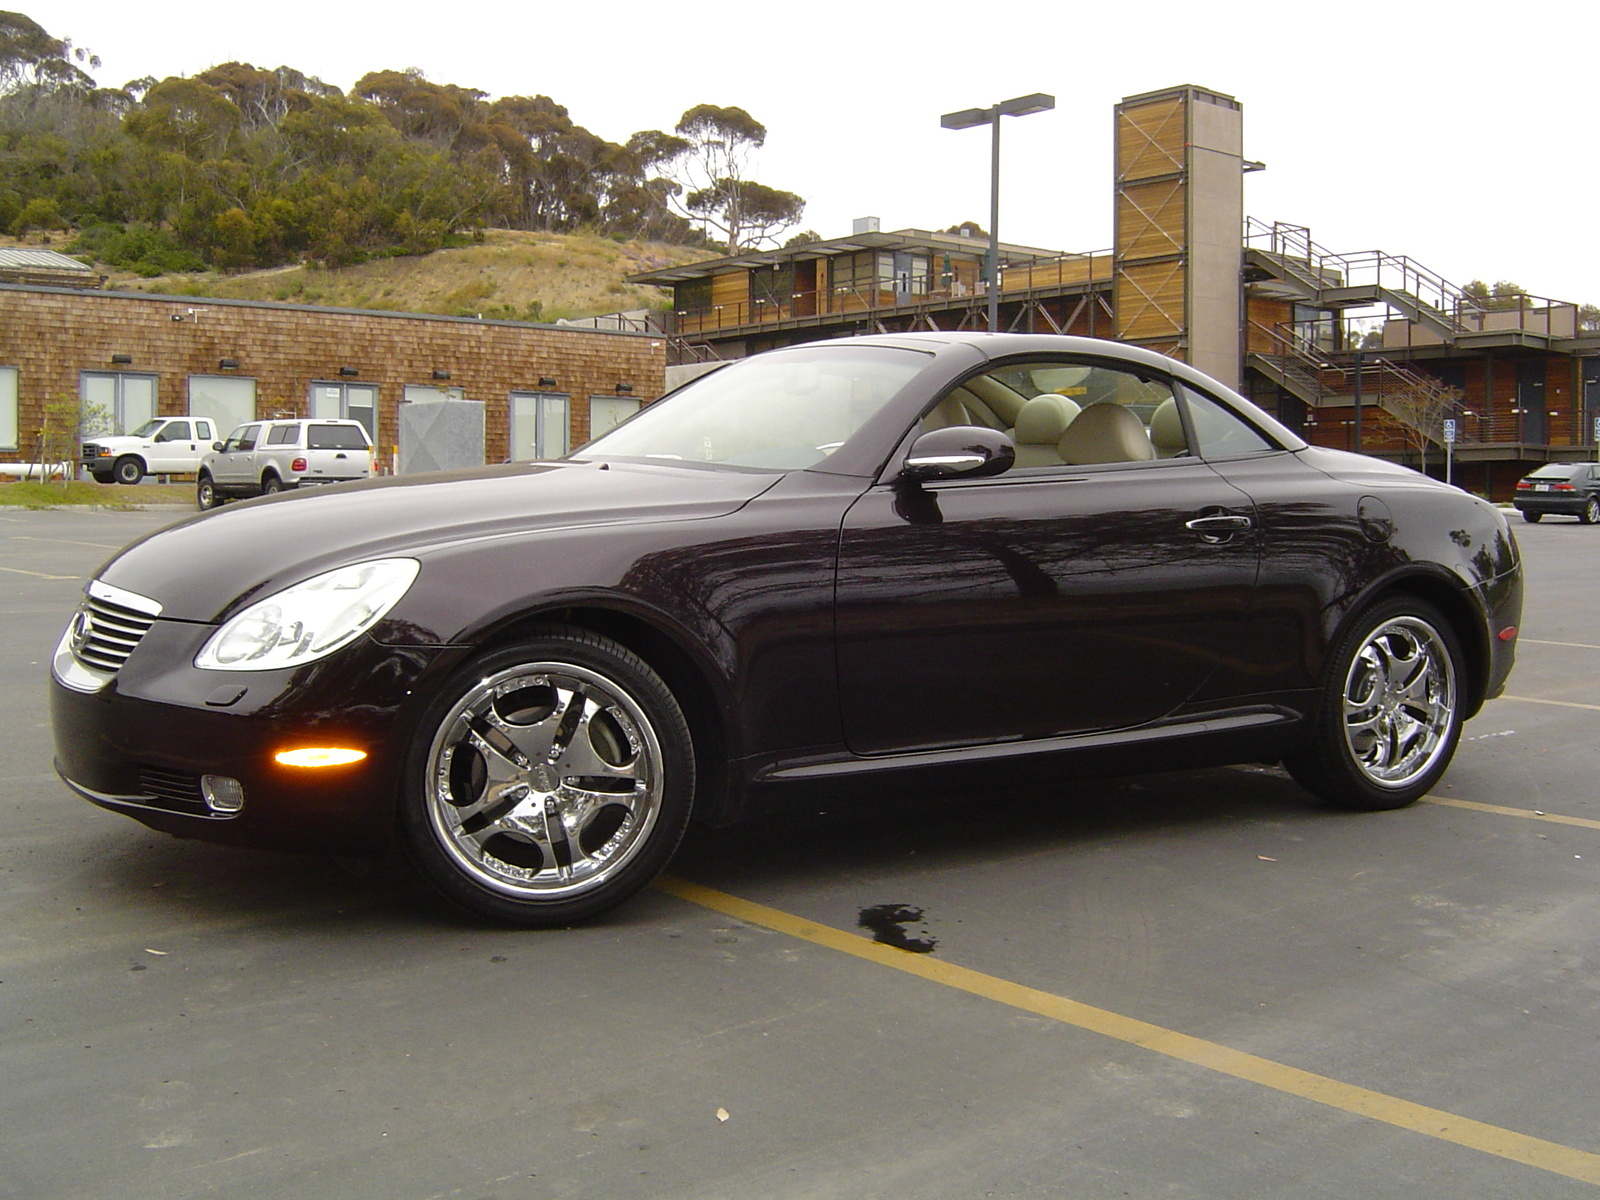 Lexus SC 430 2007 photo - 1